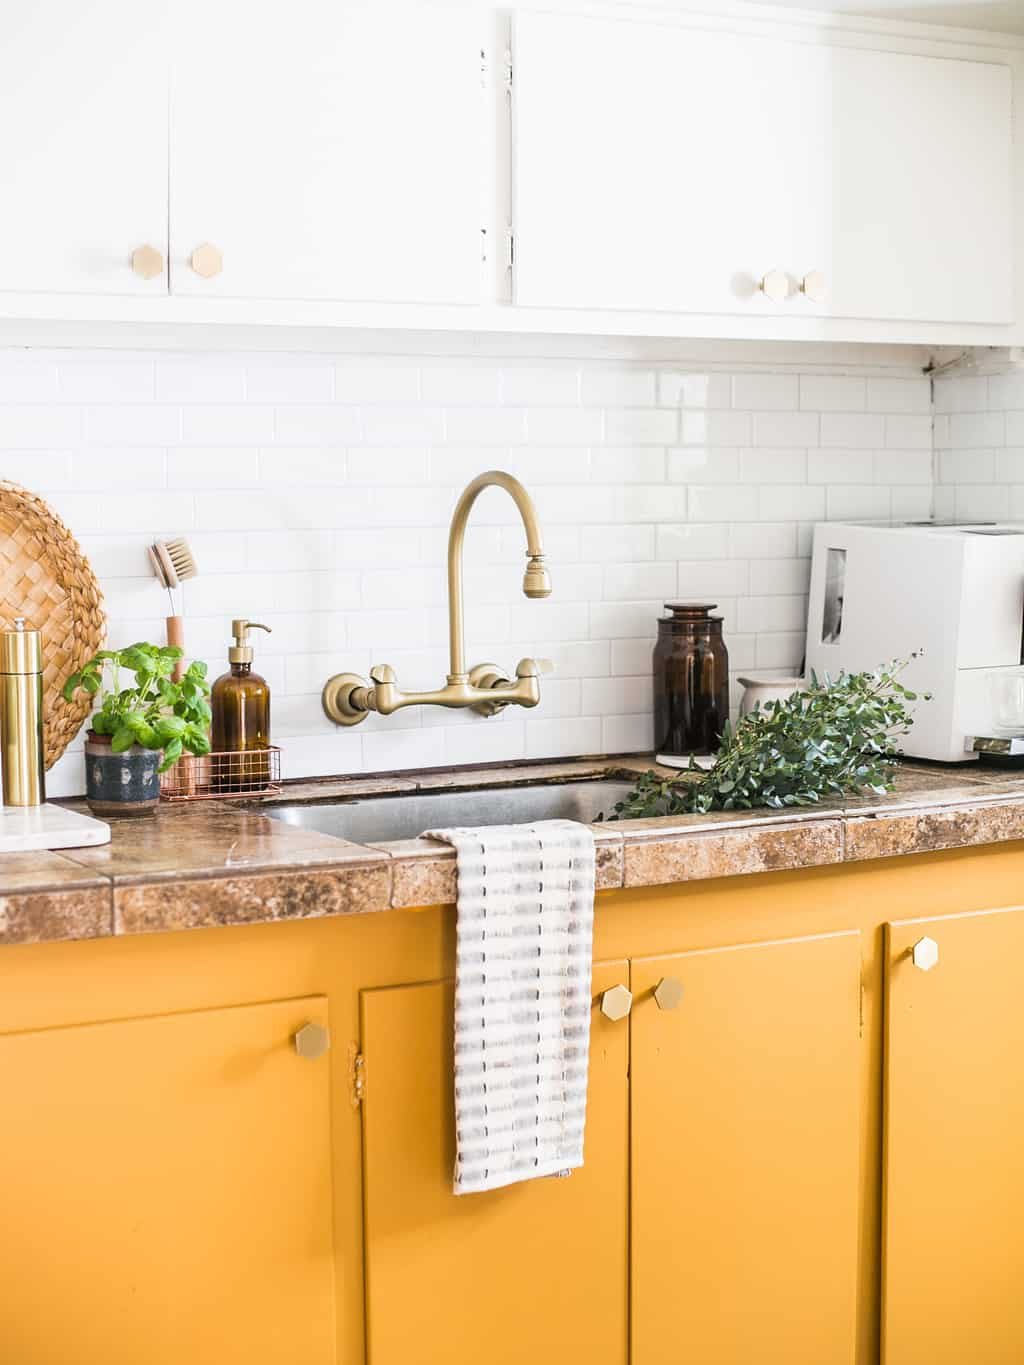 Mustard yellow cabinets with gold hardware.